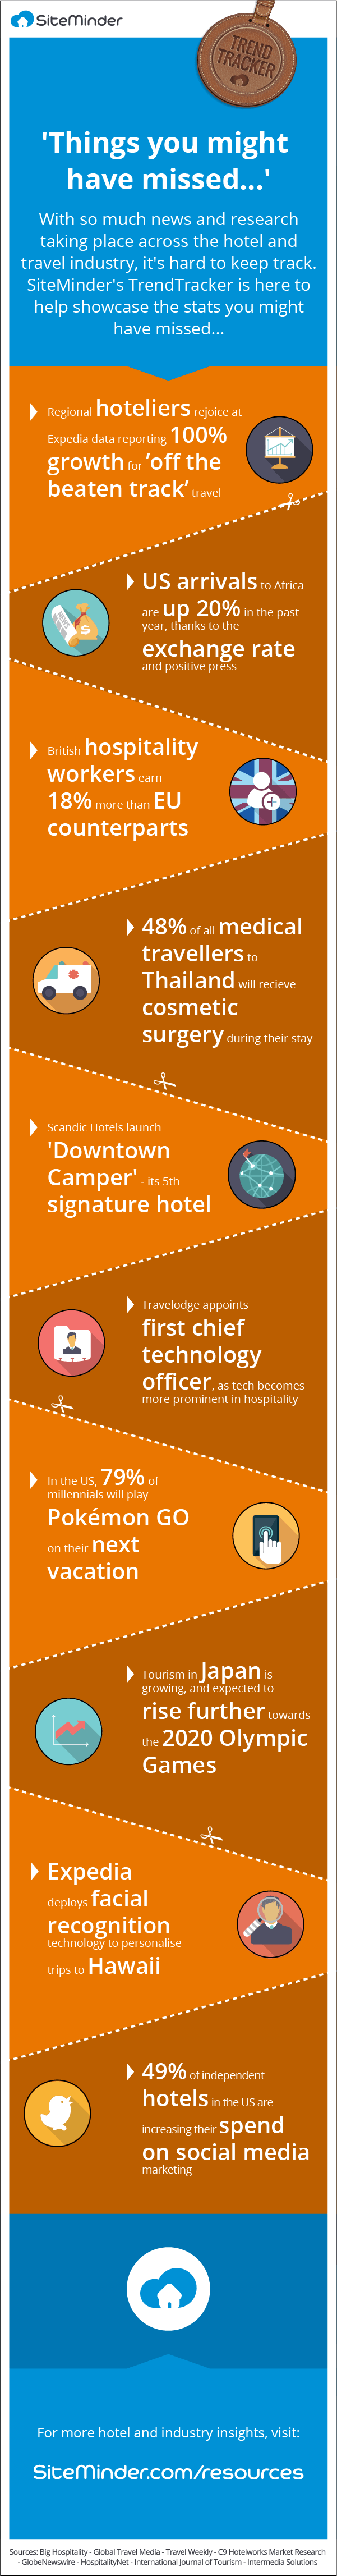 SITEMINDER-HOTEL-INDUSTRY-TRAVEL-STATS-INFOGRAPHIC